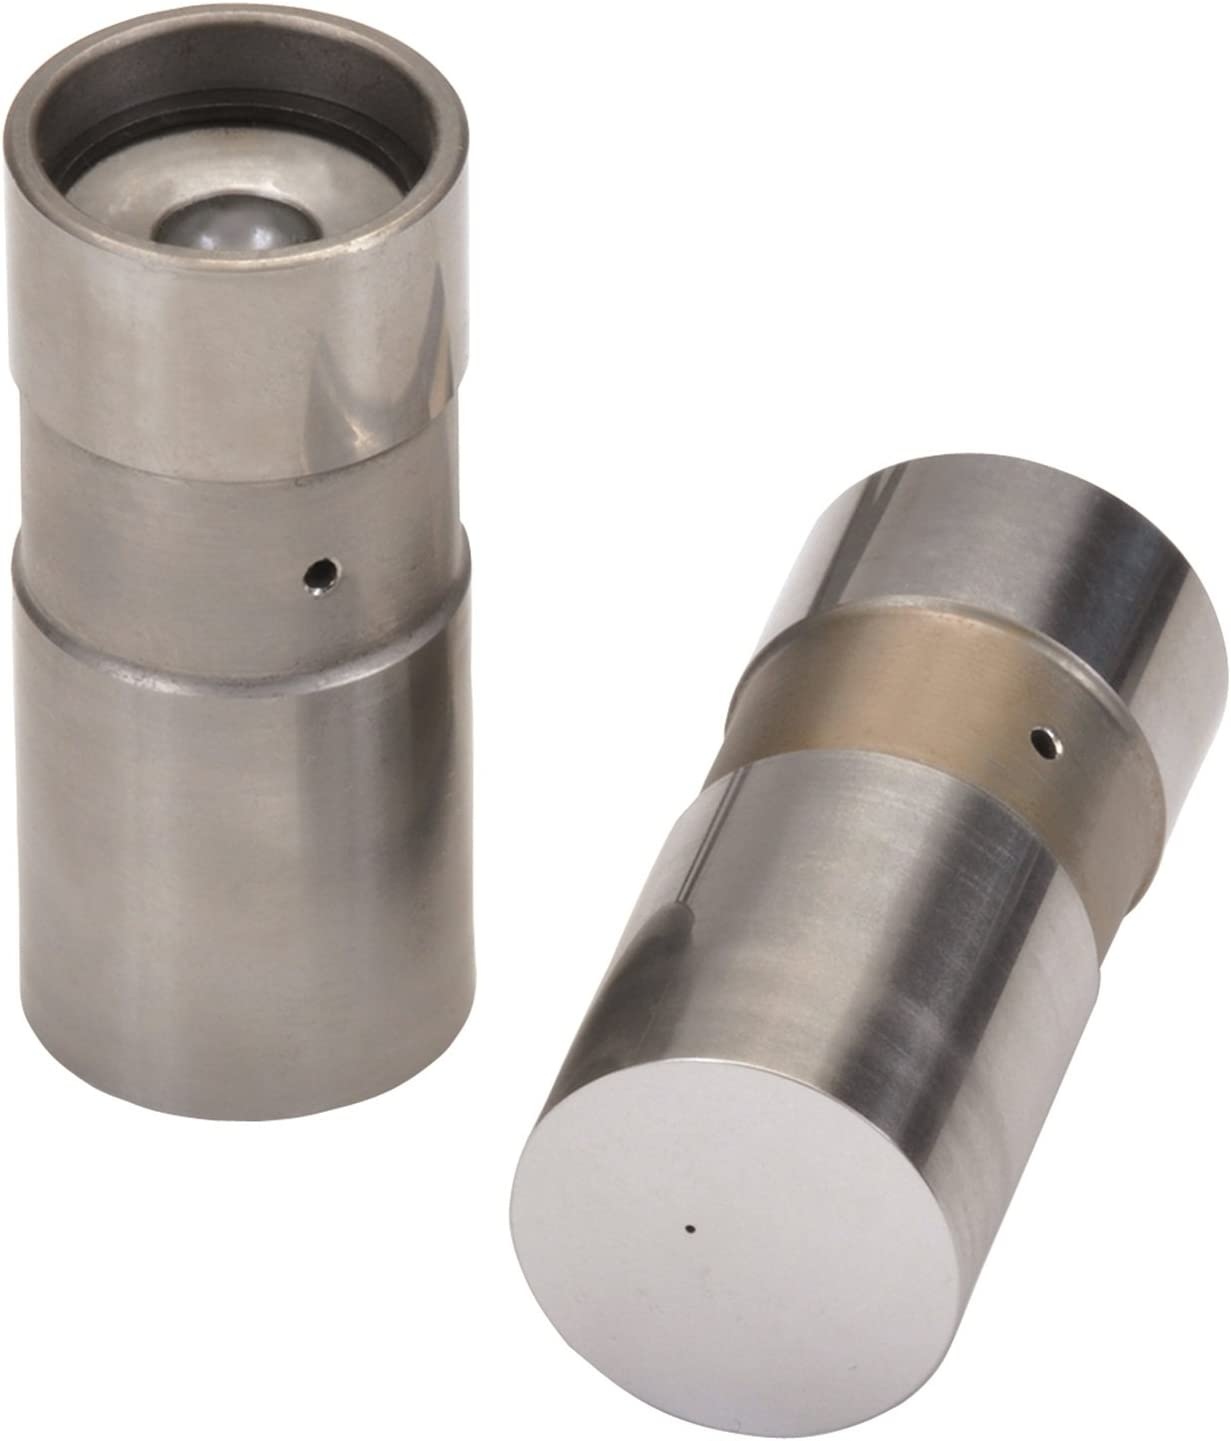 Howards Lifter Chev V-8 All items in the store Quantity limited Mech 91108-16 Tool Steel Lube Direct